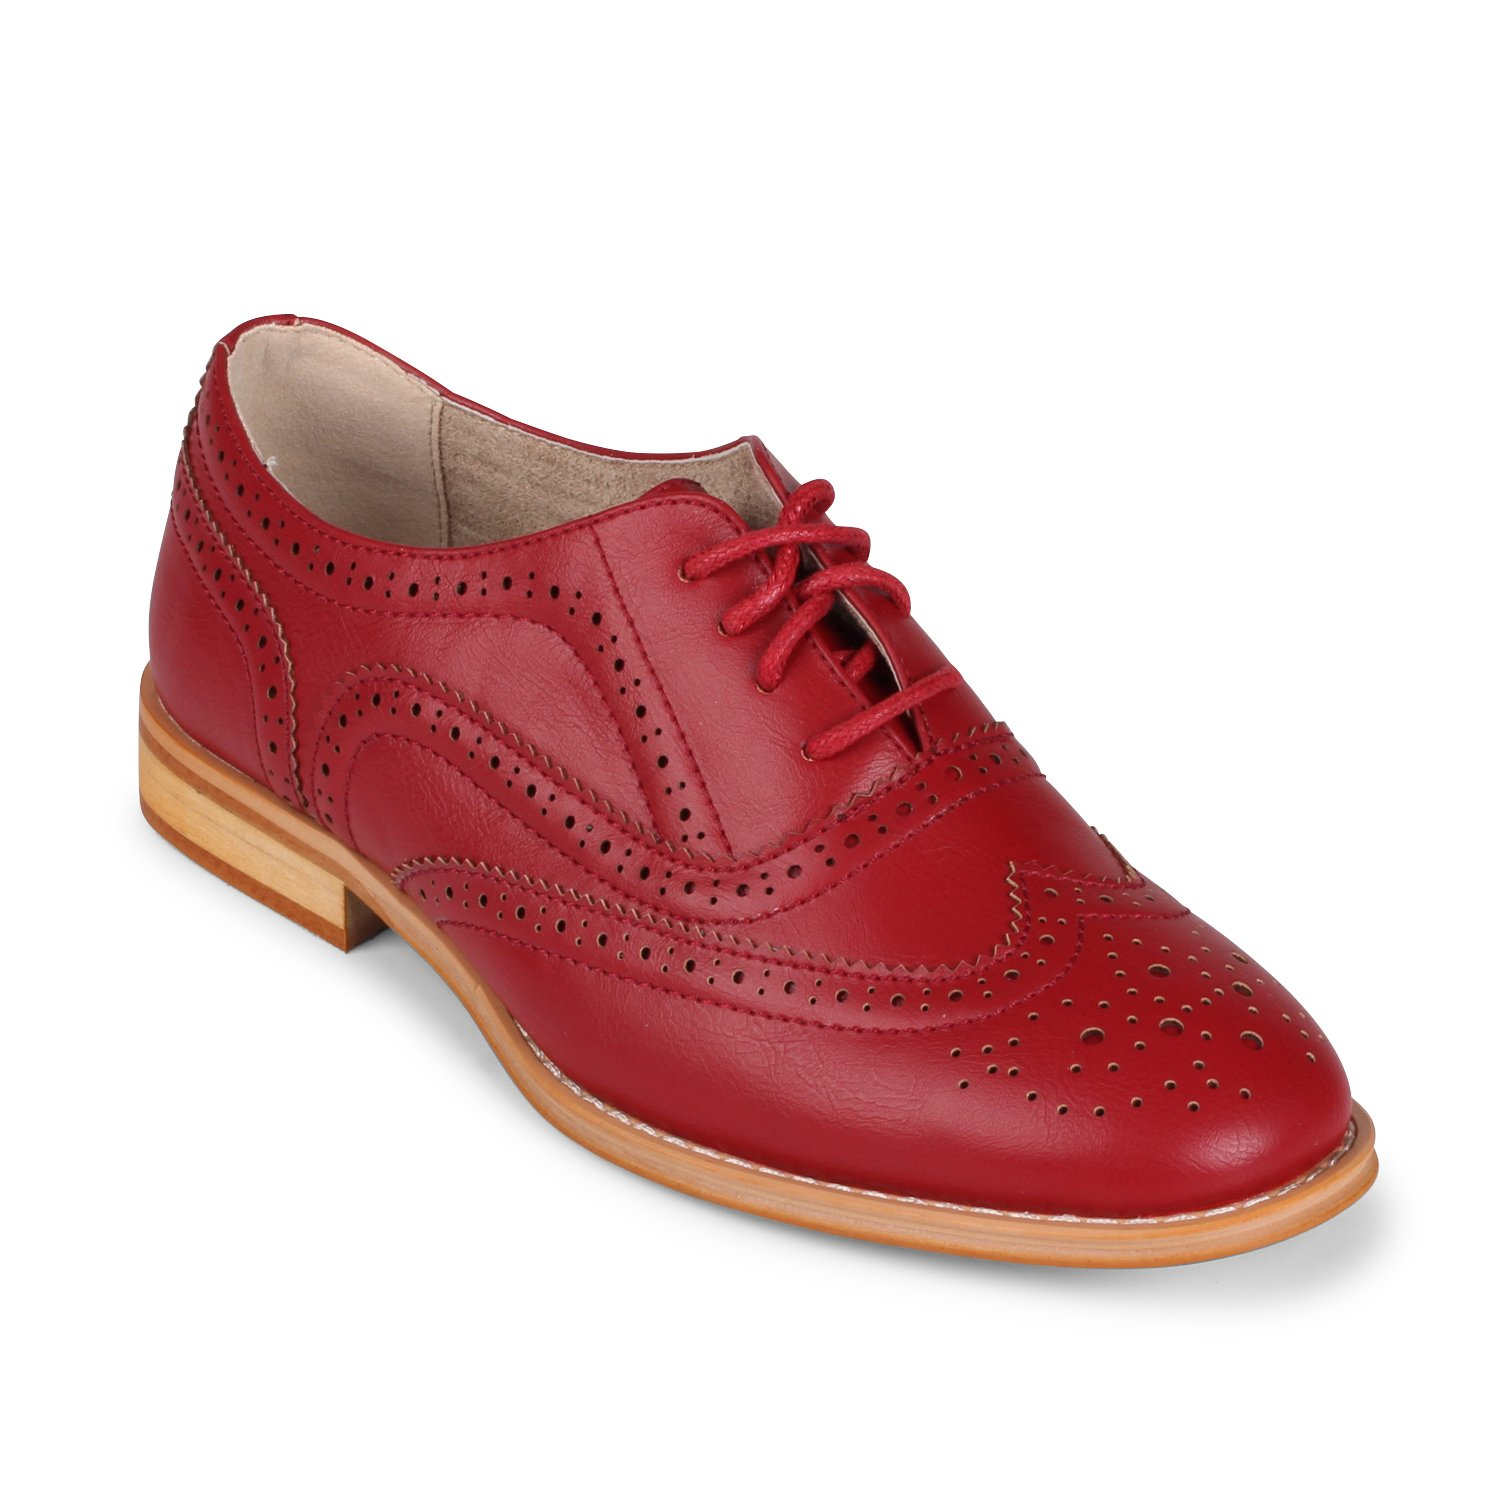 Retro & Vintage Style Shoes Wanted Shoes Womens Babe Oxford Shoe $59.99 AT vintagedancer.com